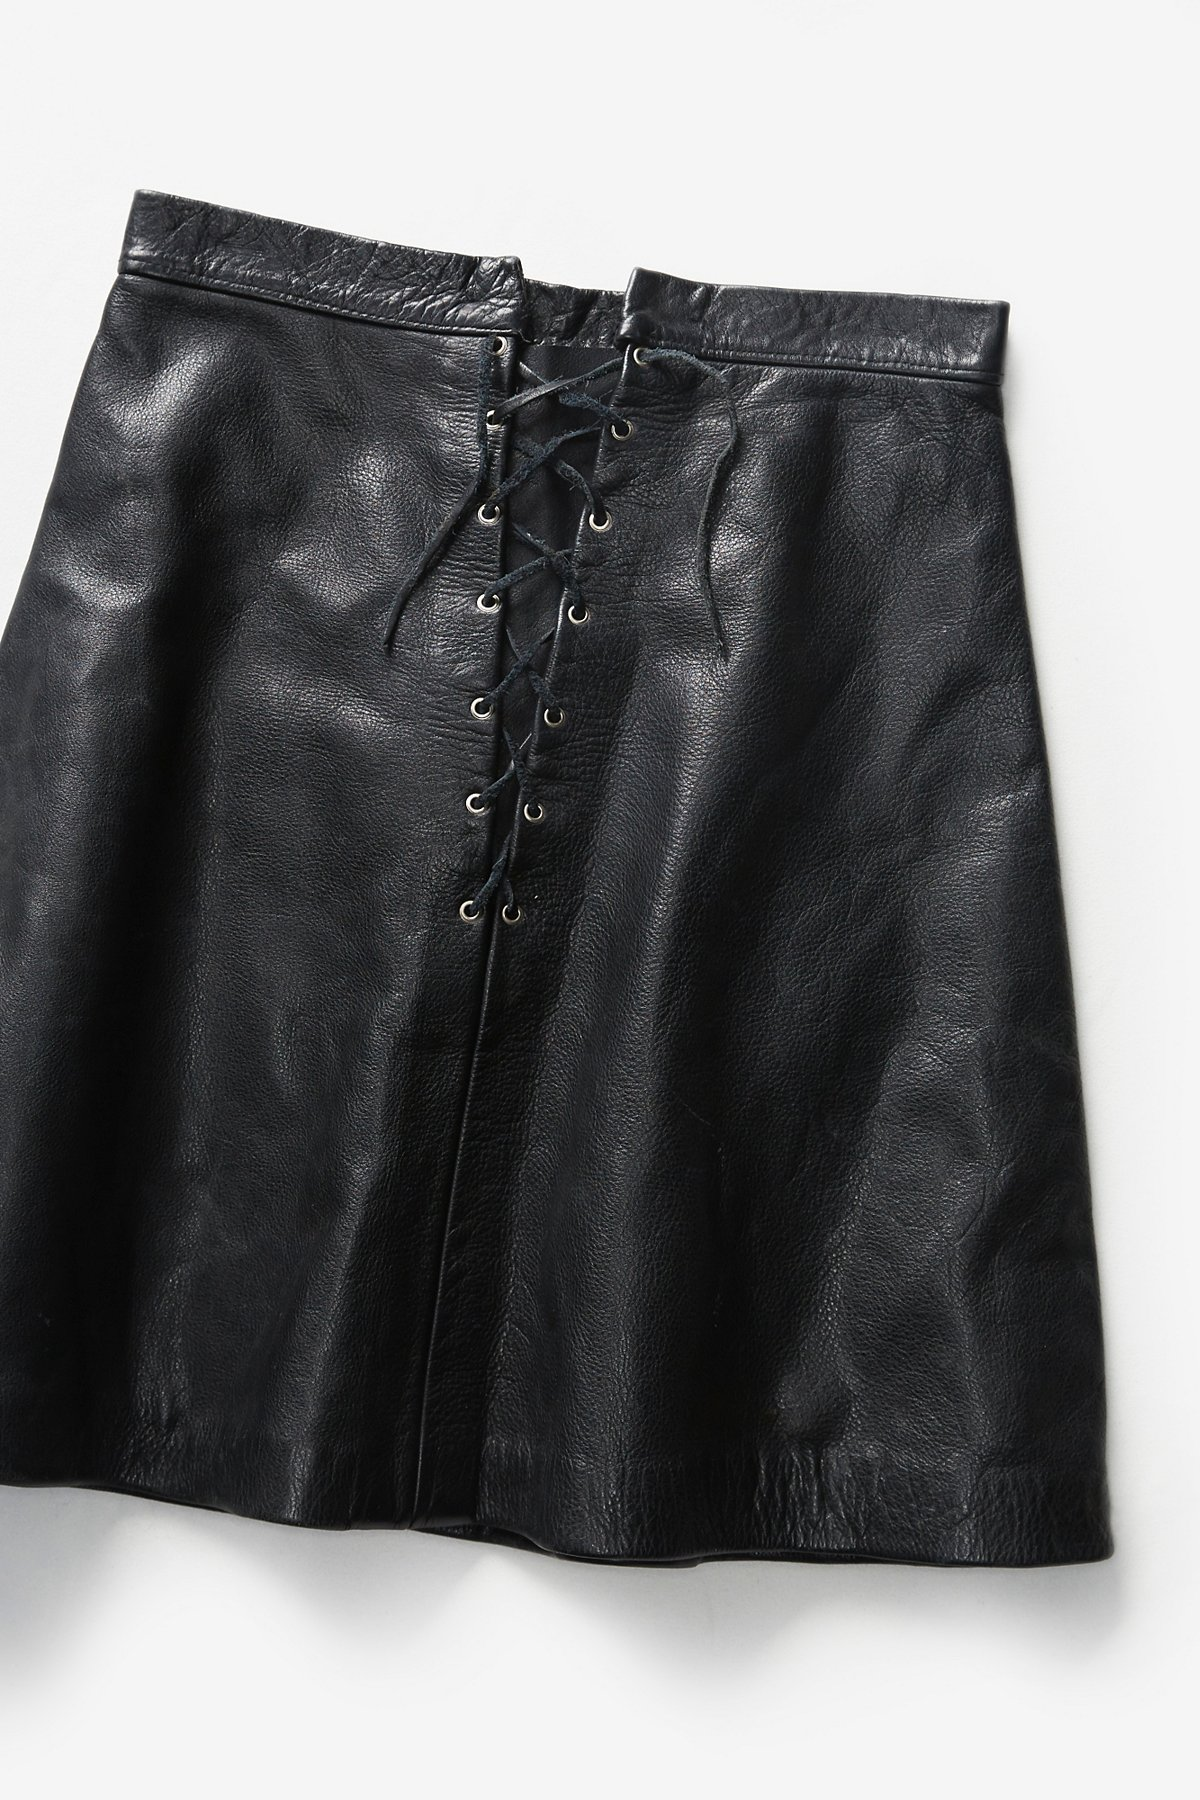 Vintage 1980s Leather Skirt